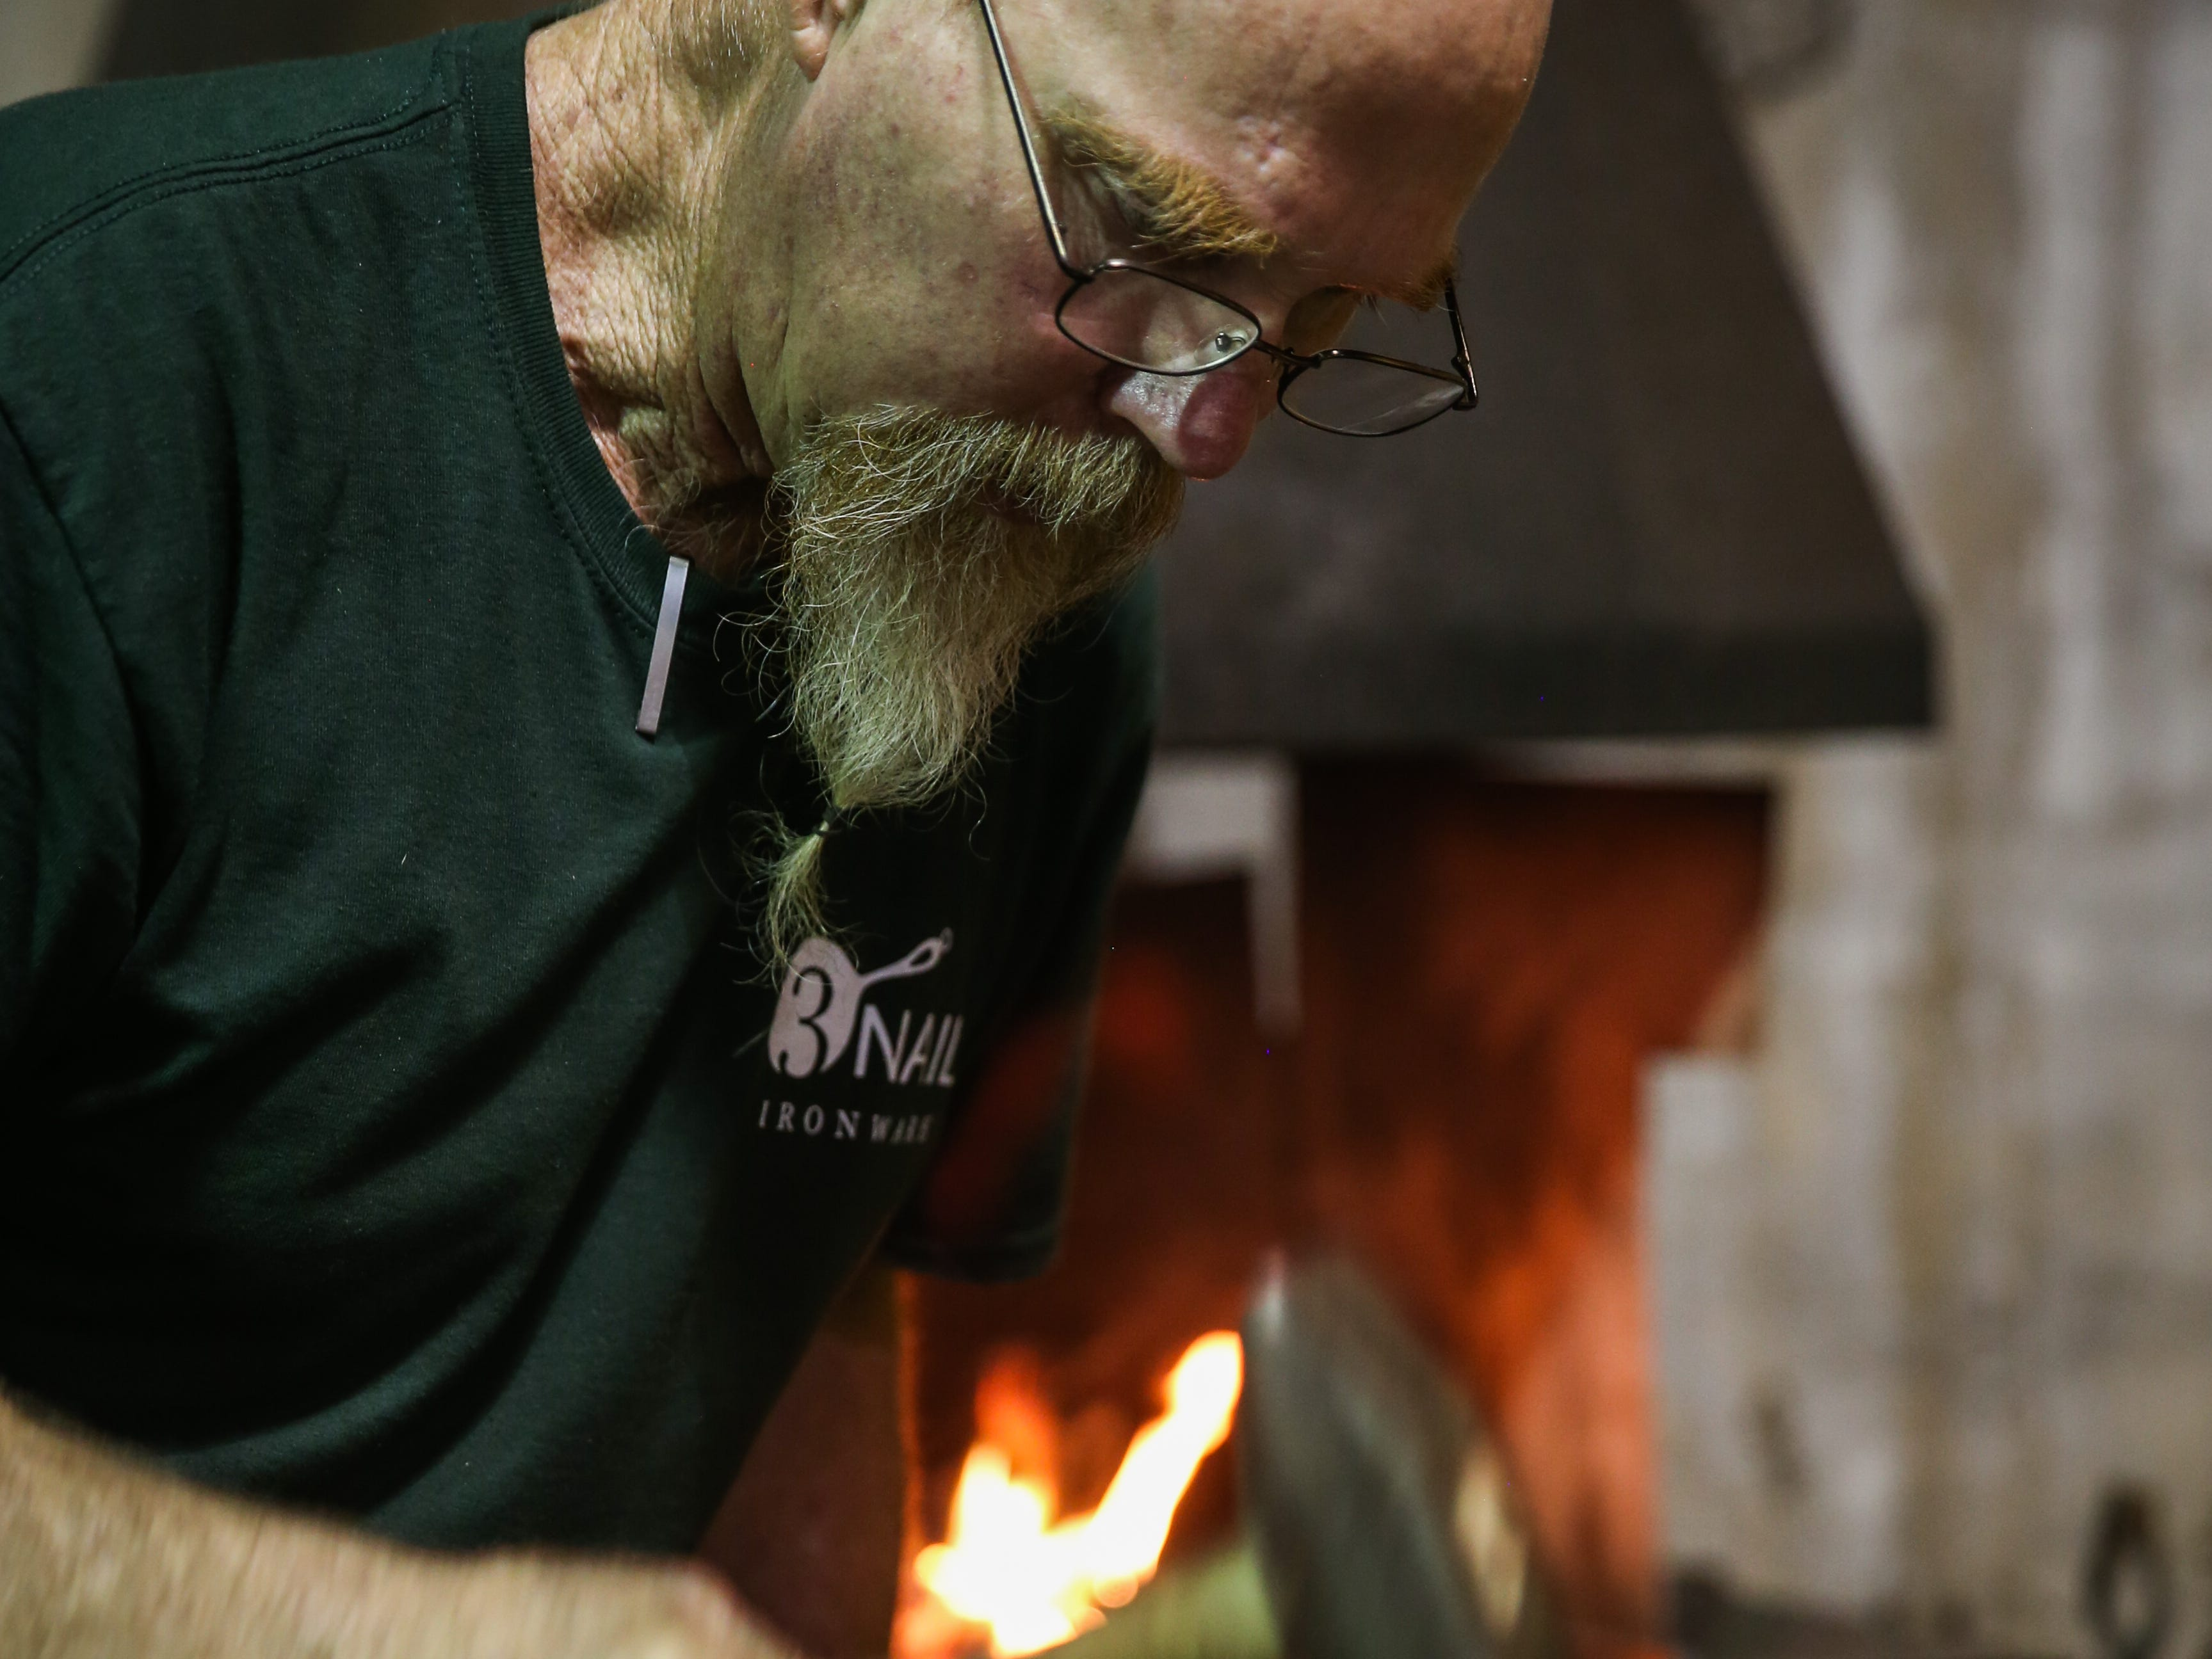 Randy Kiser forges a handle of a skillet in his workshop Thursday, Aug. 2, 2018, at 3Nail Ironwork in Paint Rock.